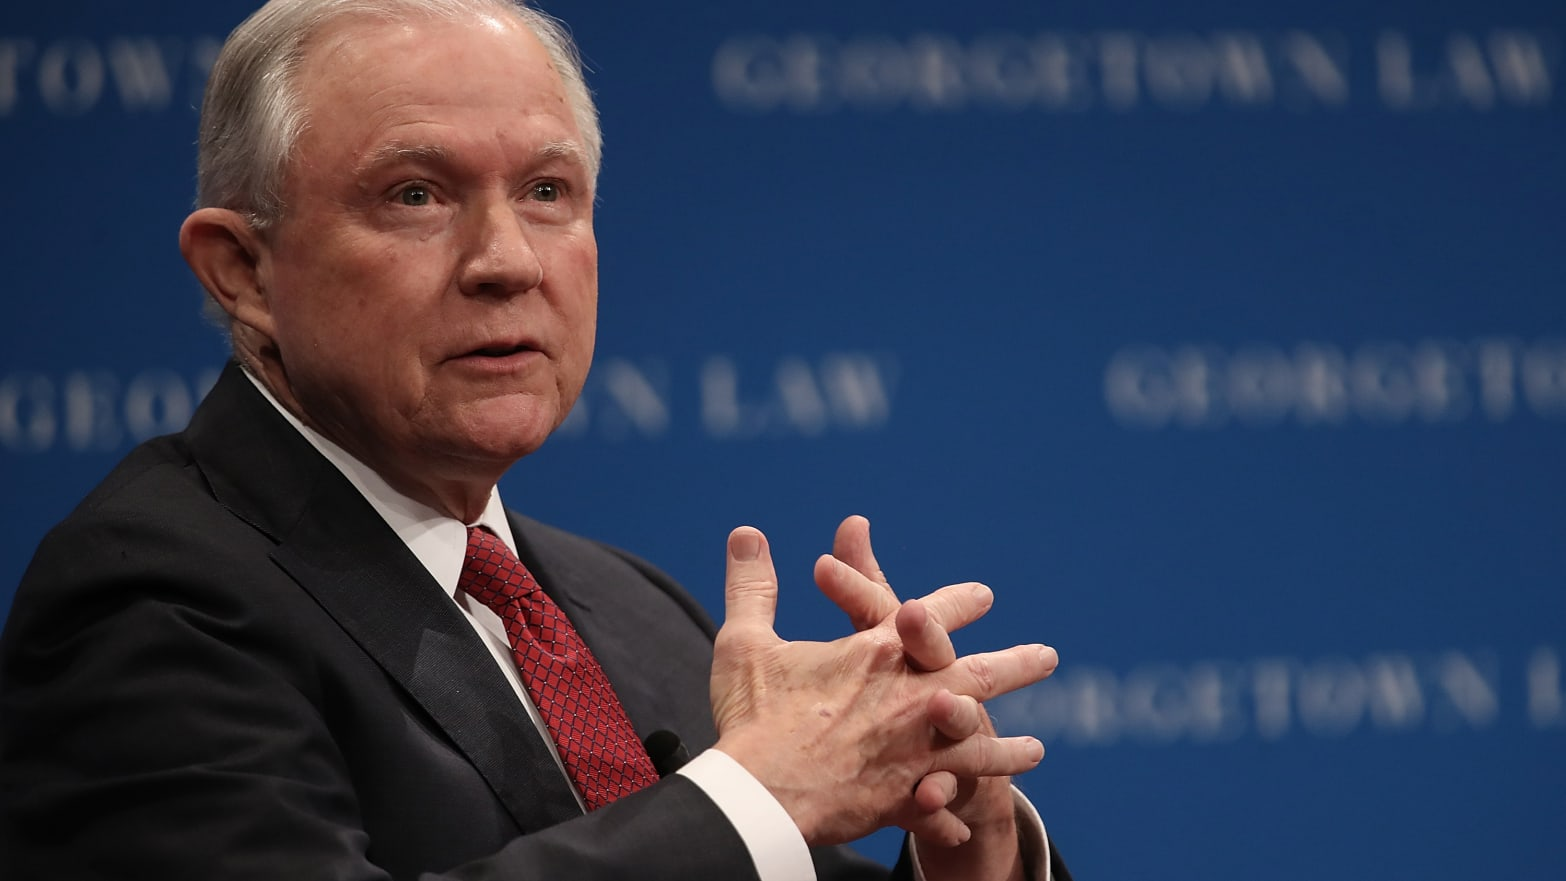 getown University Law Center September 26, 2017 in Washington, DC. Sessions spoke on the topic of free speech on college campuses and took several questions following his remarks.